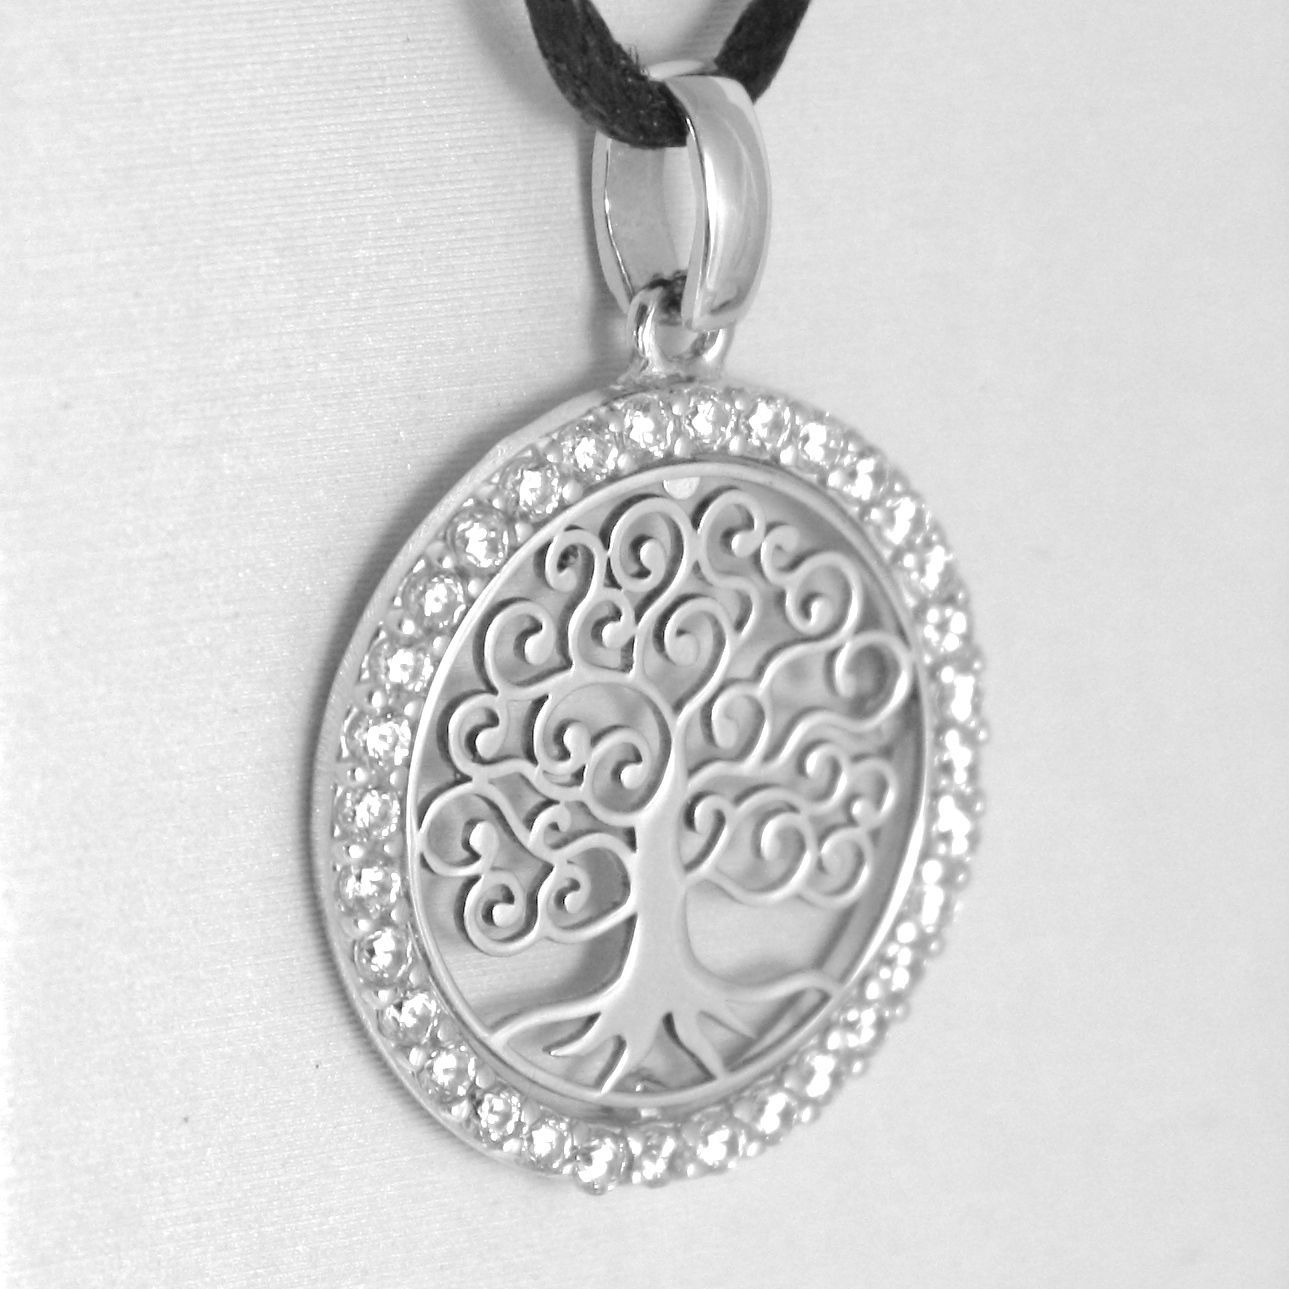 18K WHITE GOLD TREE OF LIFE PENDANT, 0.75 INCHES, ZIRCONIA, MADE IN ITALY